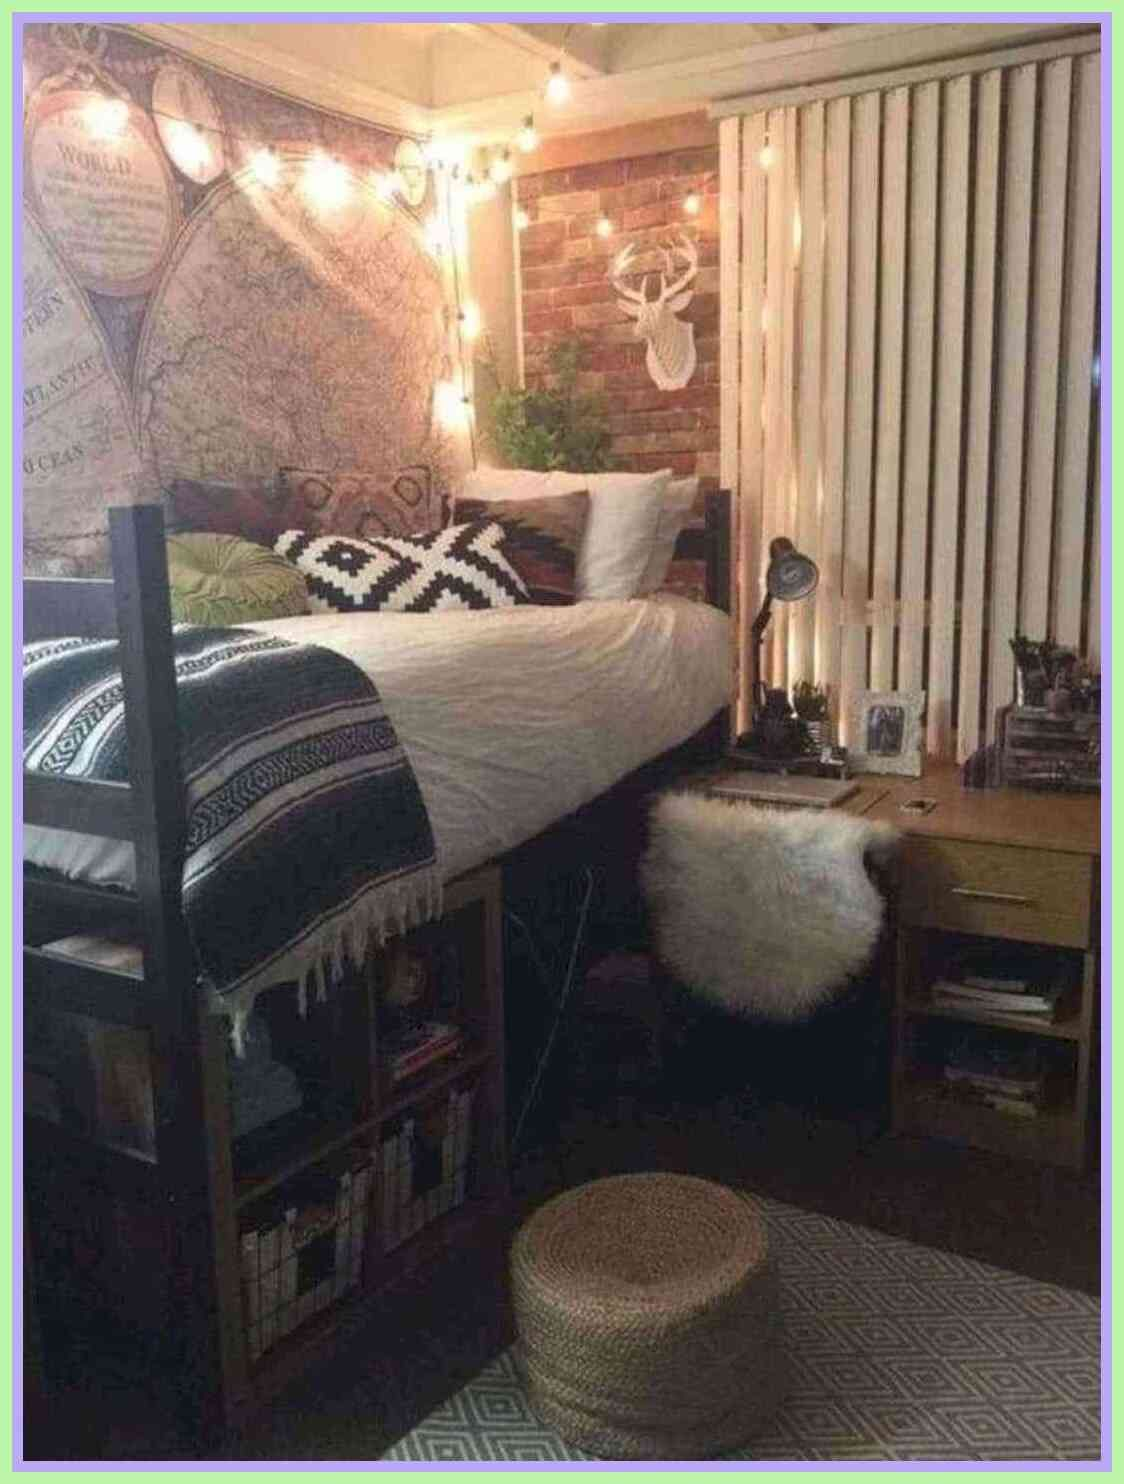 Dorm Room Ideas for guys Cute-#Dorm #Room #Ideas #for #guys #Cute Please Click Link To Find More Reference,,, ENJOY!!